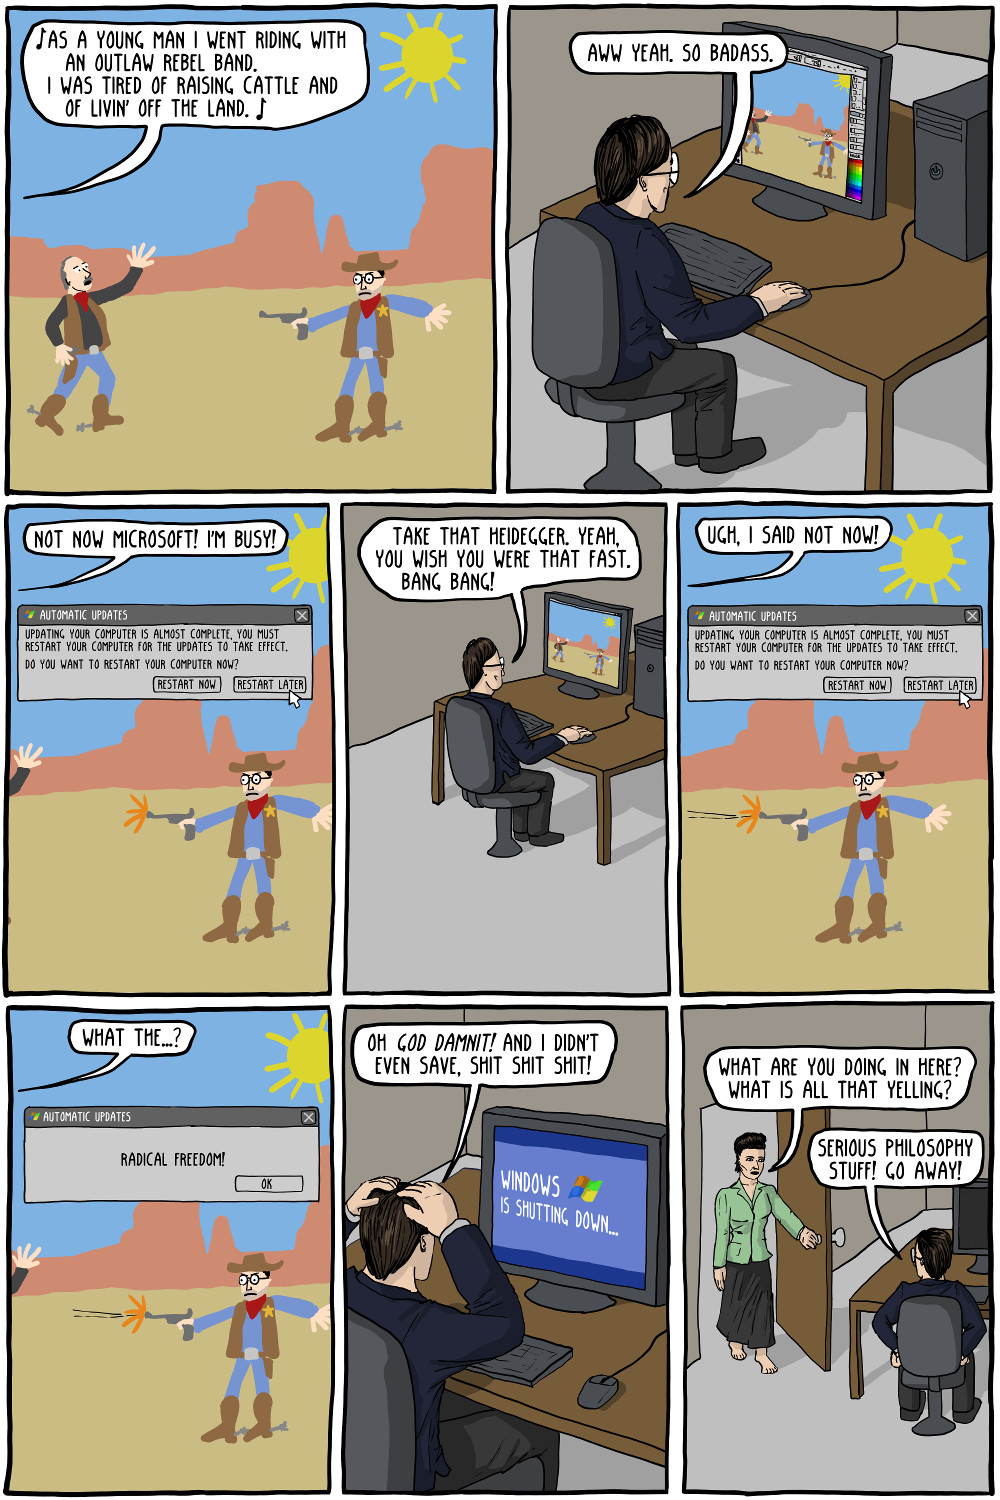 Sartre Heidegger Video Game Comic